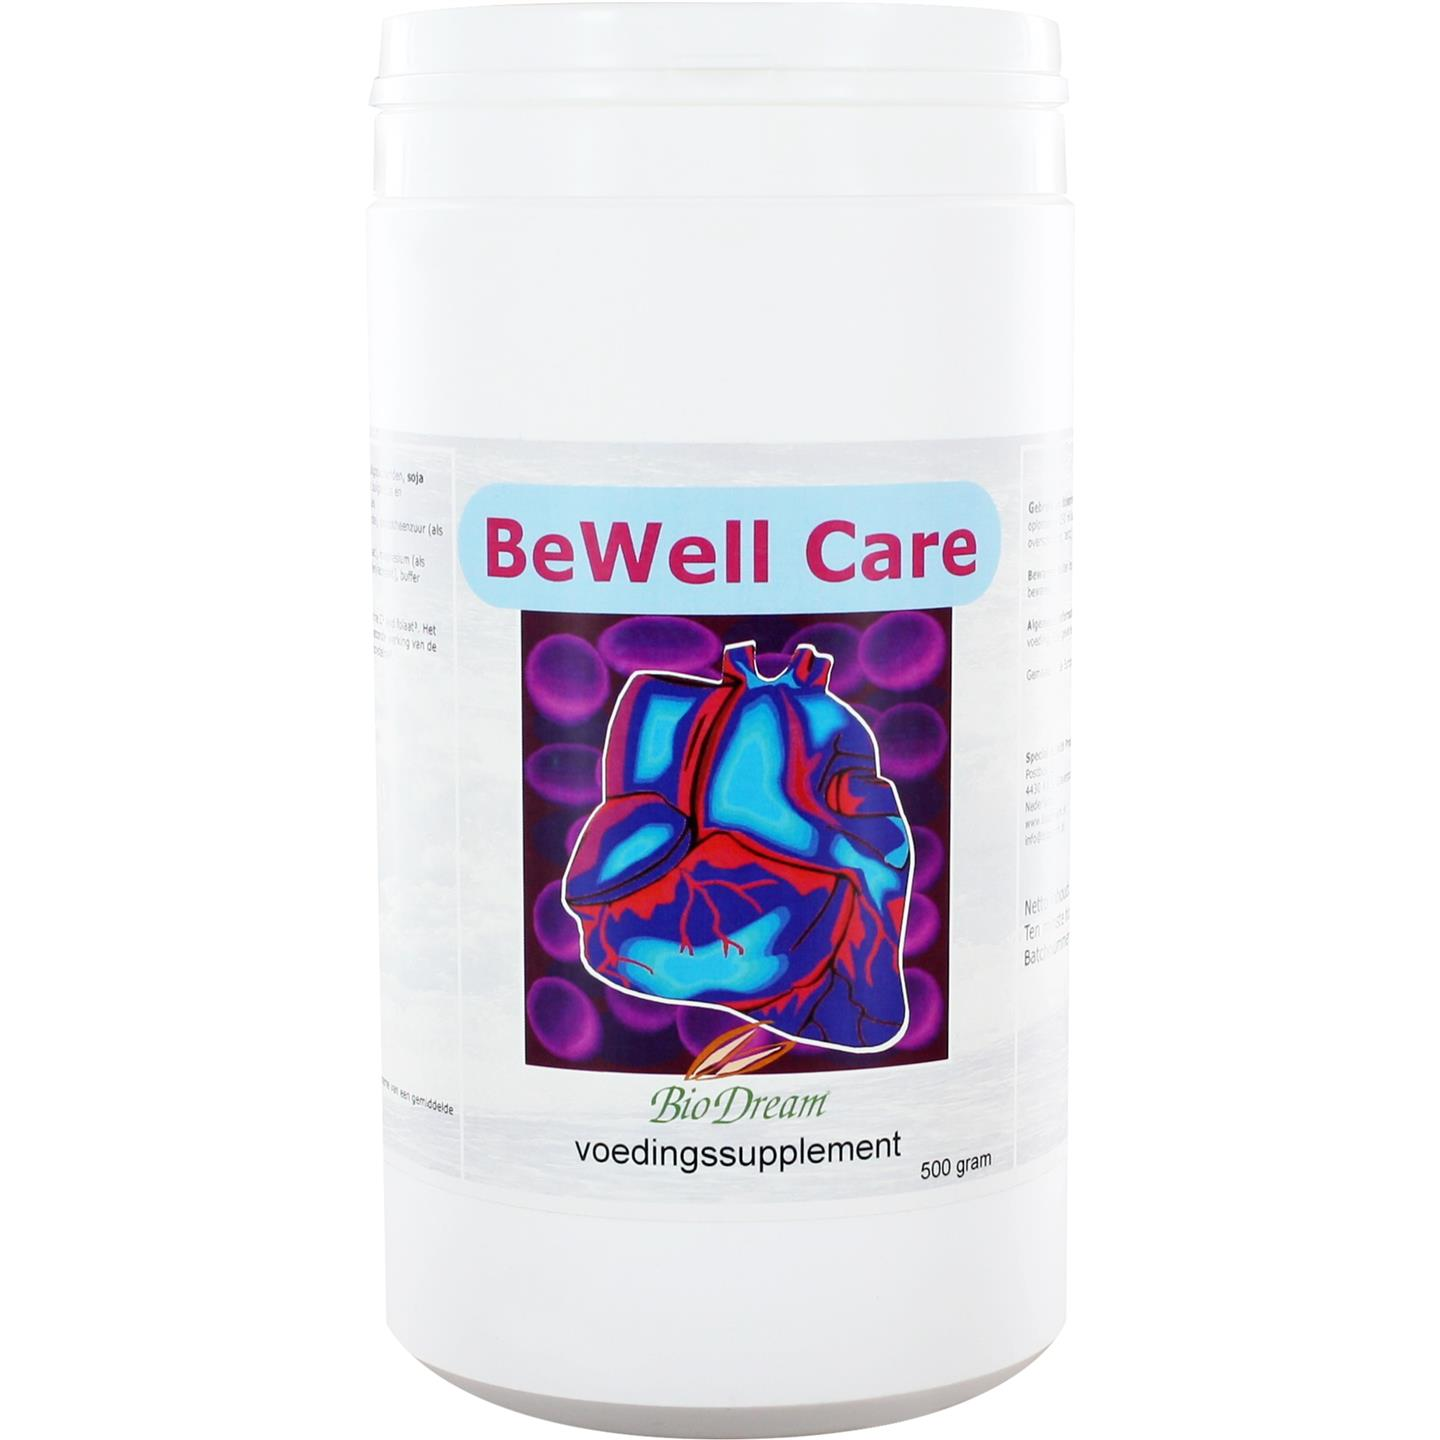 BeWell Care